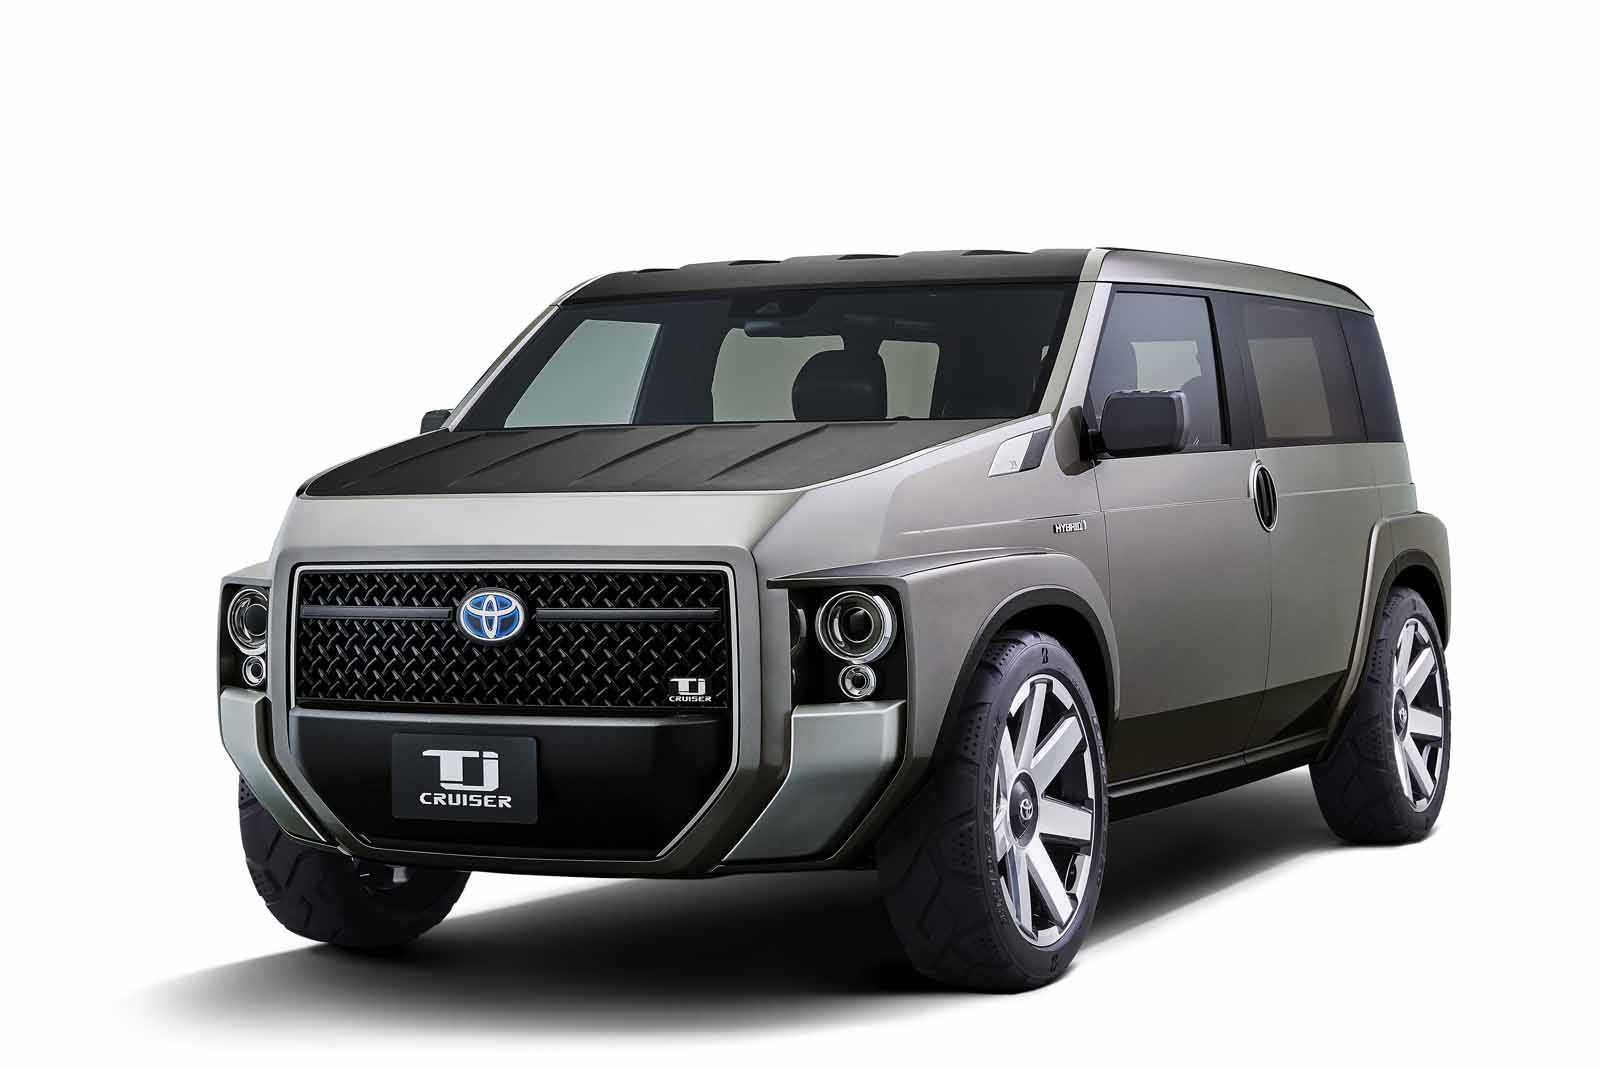 toyota tj cruiser is an unconventional van suv cross breed news. Black Bedroom Furniture Sets. Home Design Ideas